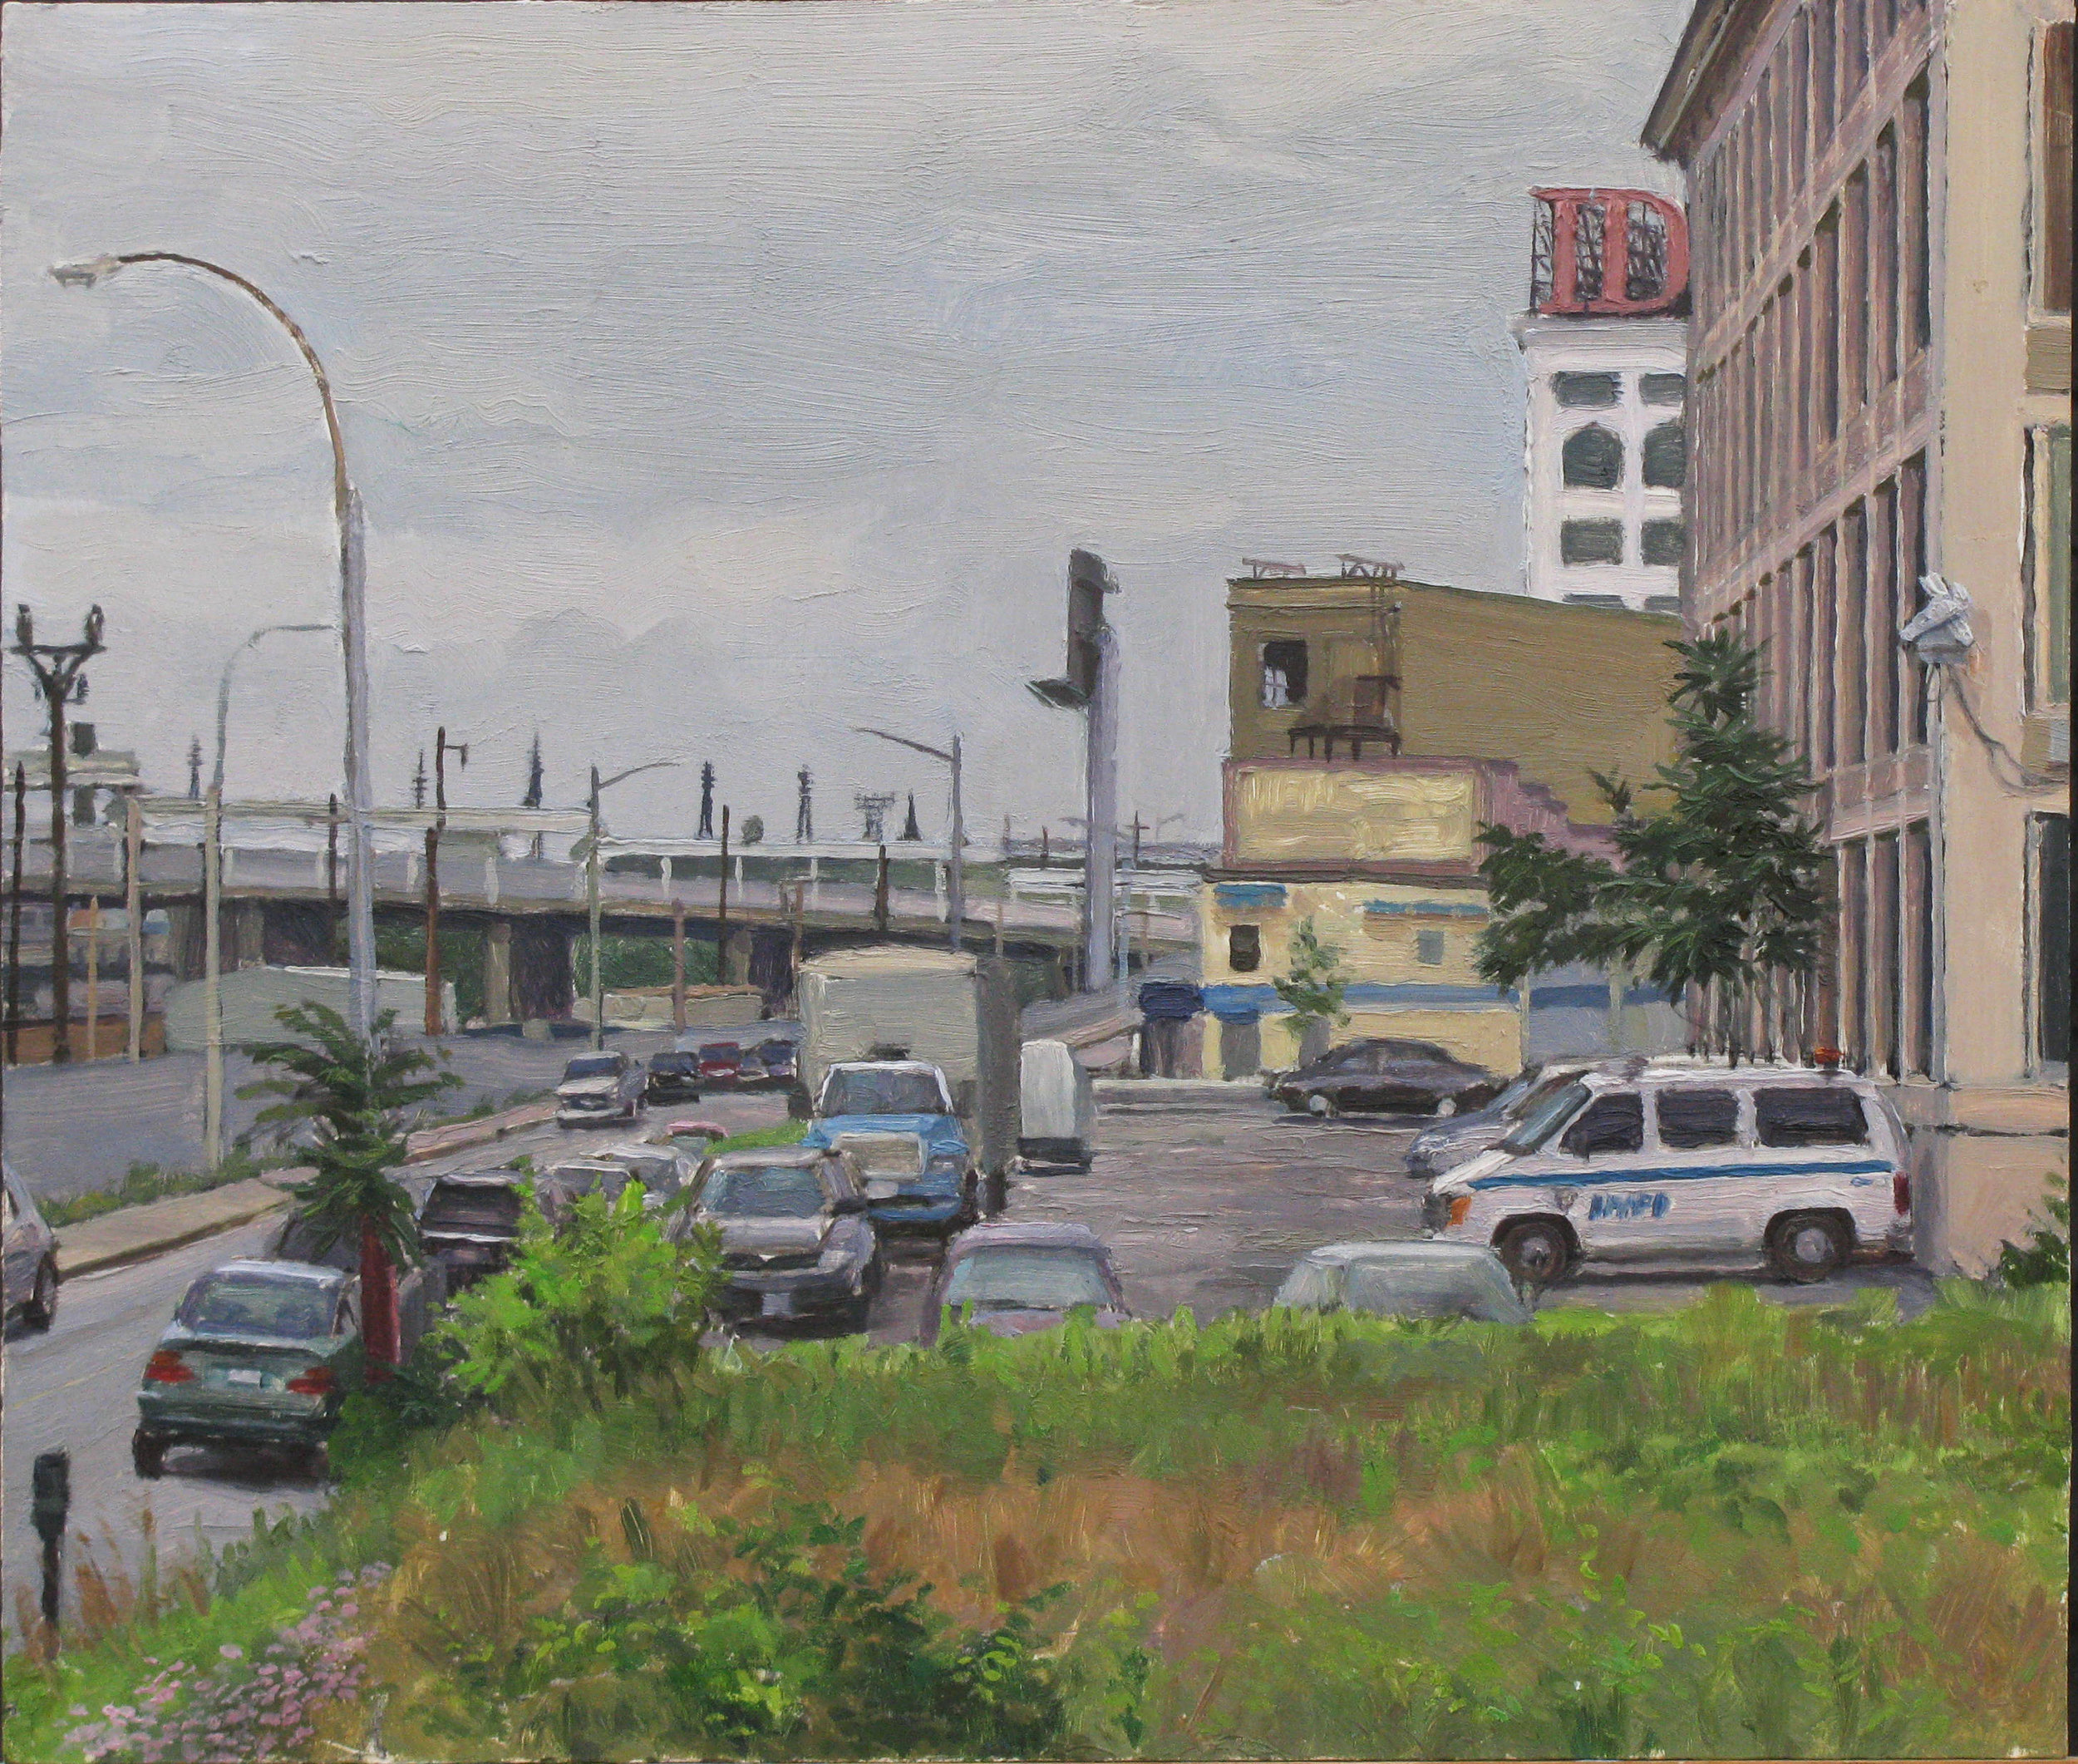 "M-20: SKILLMAN AVE., QUEENS oil on panel 14 x 16"" 2009"